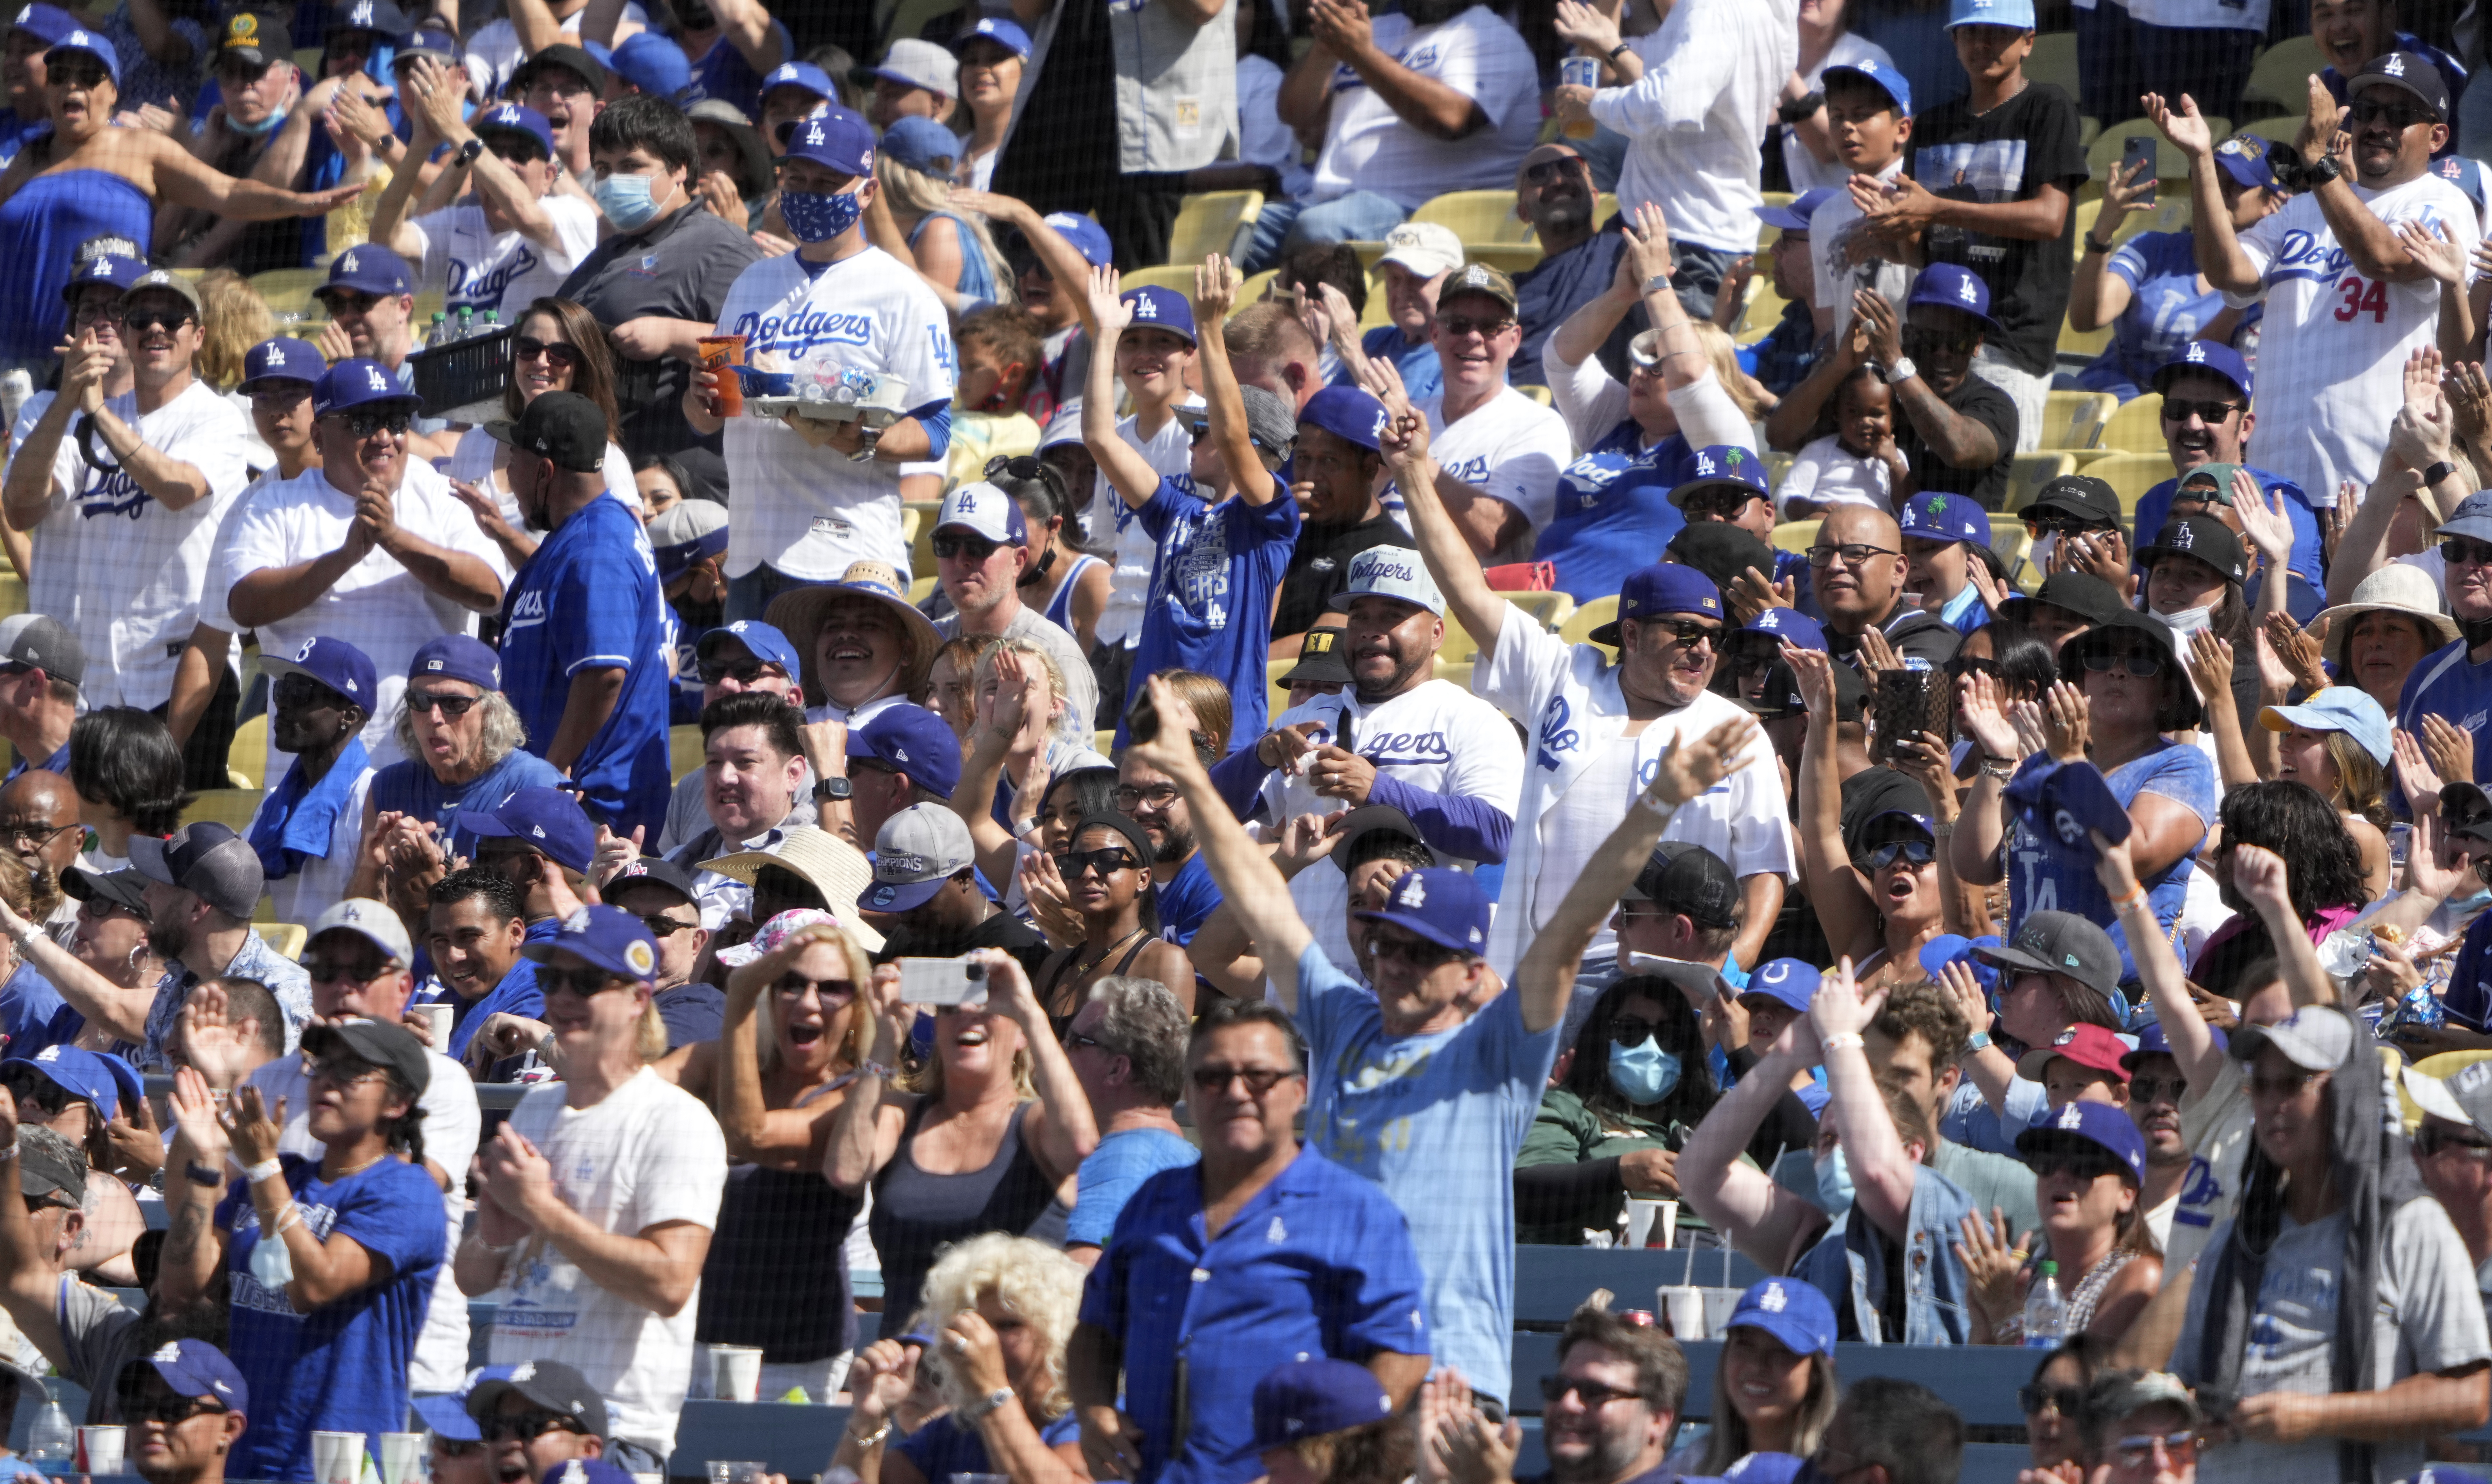 Los Angeles Dodgers defeated Milwaukee Brewers 10-3 during a baseball game at Dodger Stadium in Los Angeles.